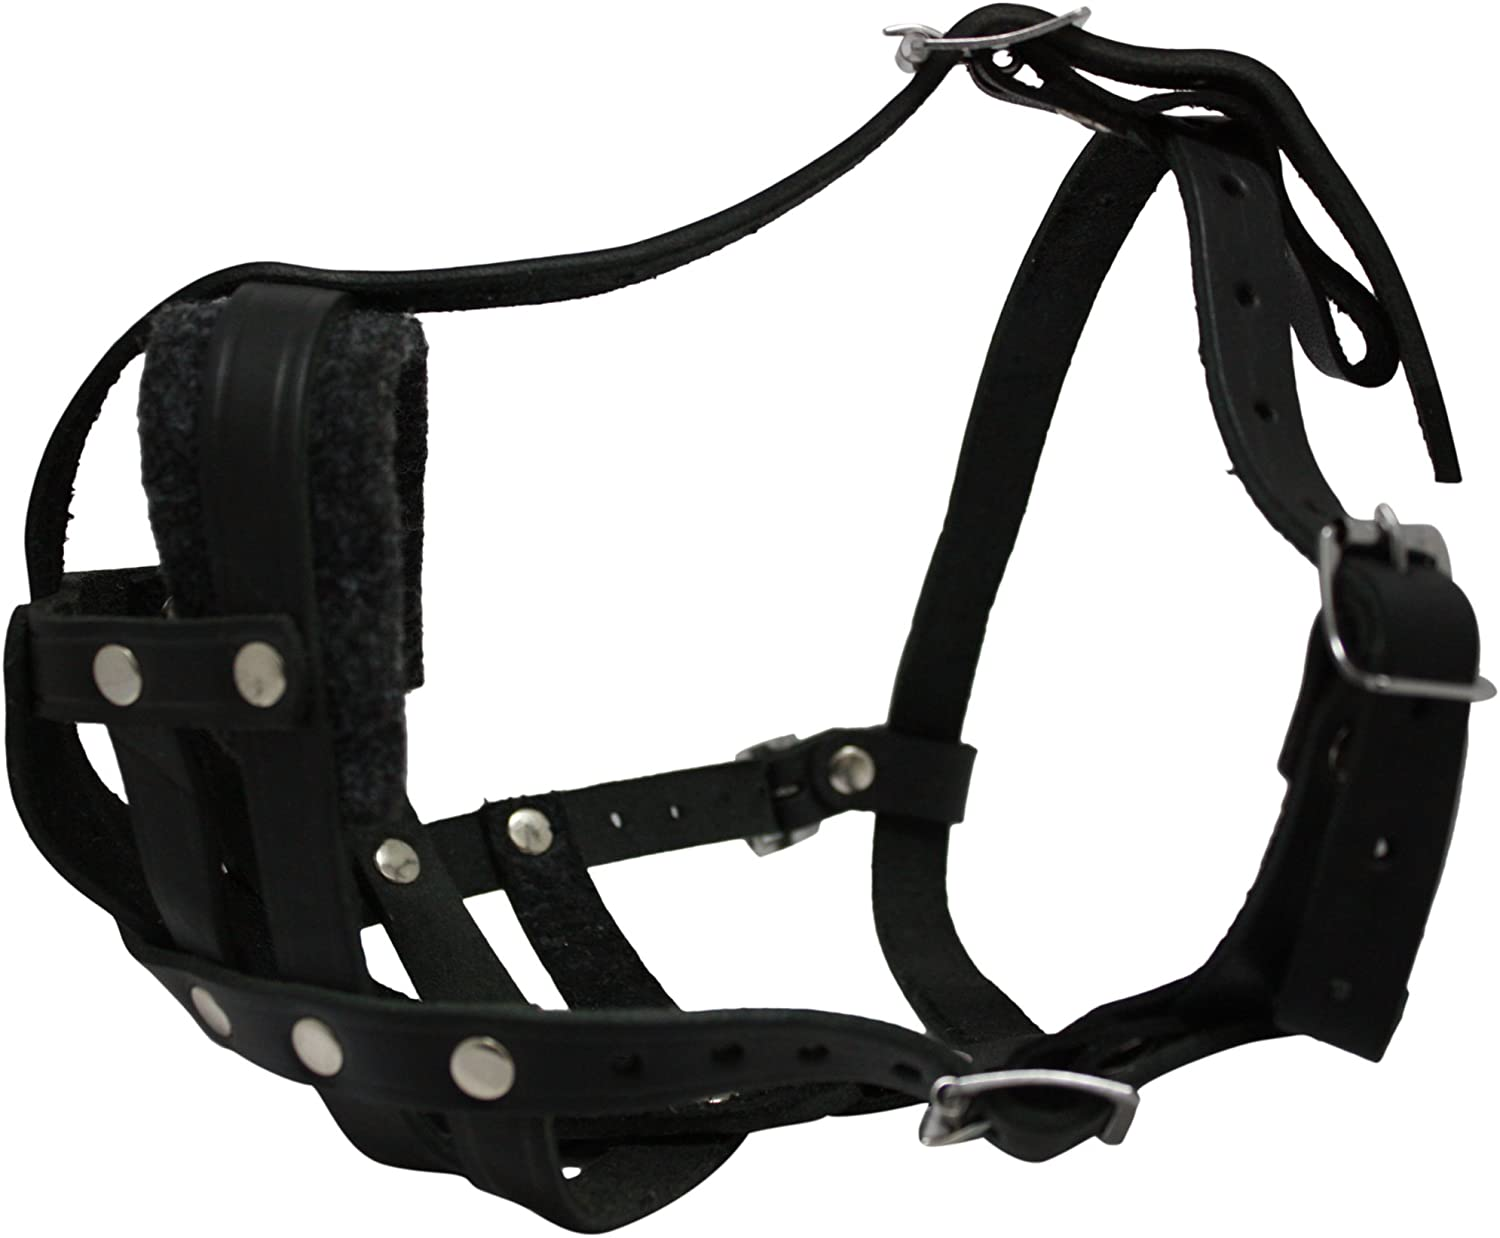 Leather Basket Muzzle (Boston). BM2, Black. 13.5